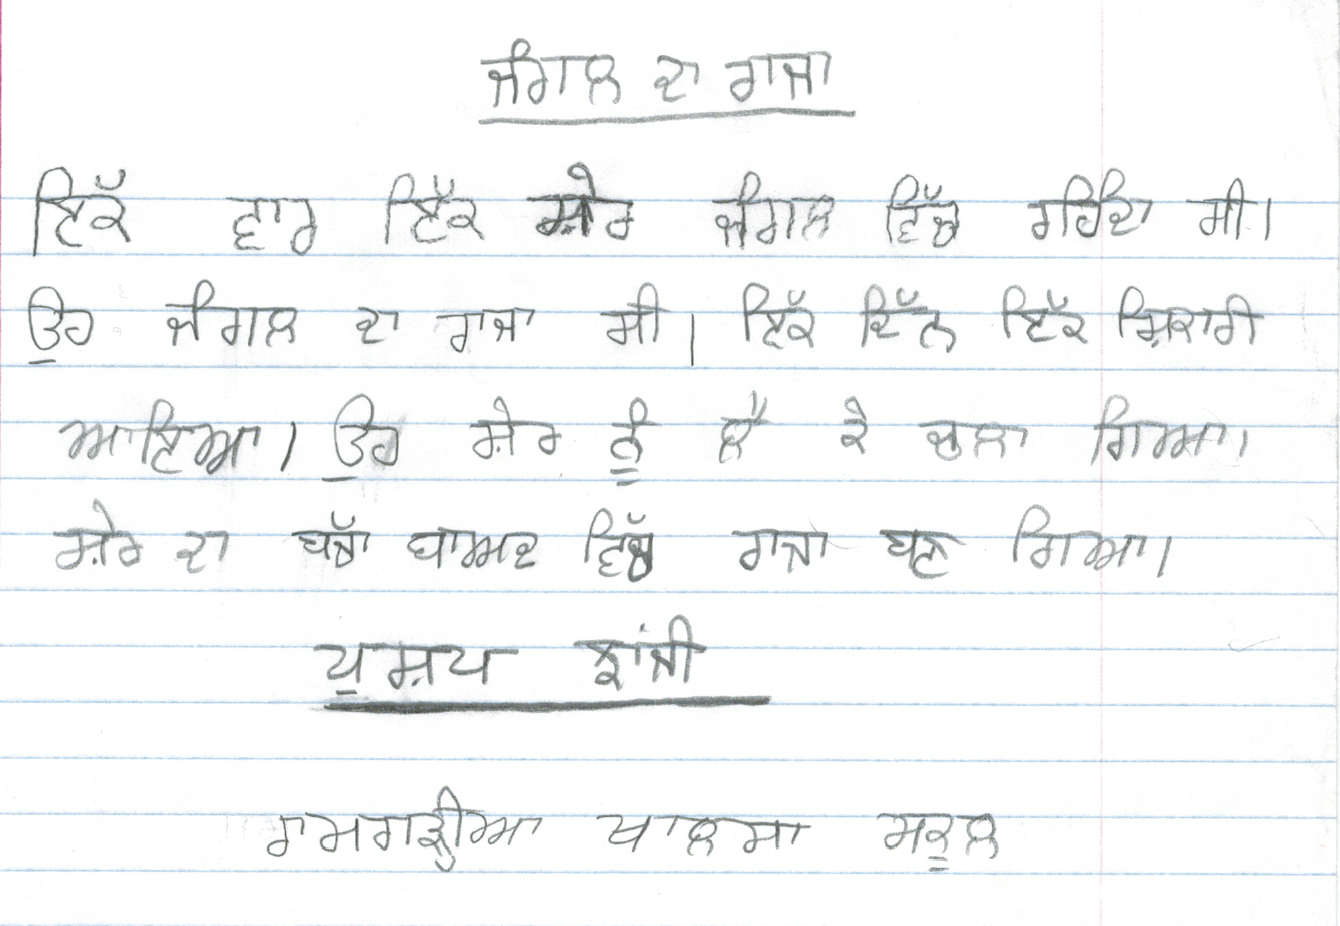 mother teresa essay in punjabi language 91 121 113 106 mother teresa essay in punjabi language